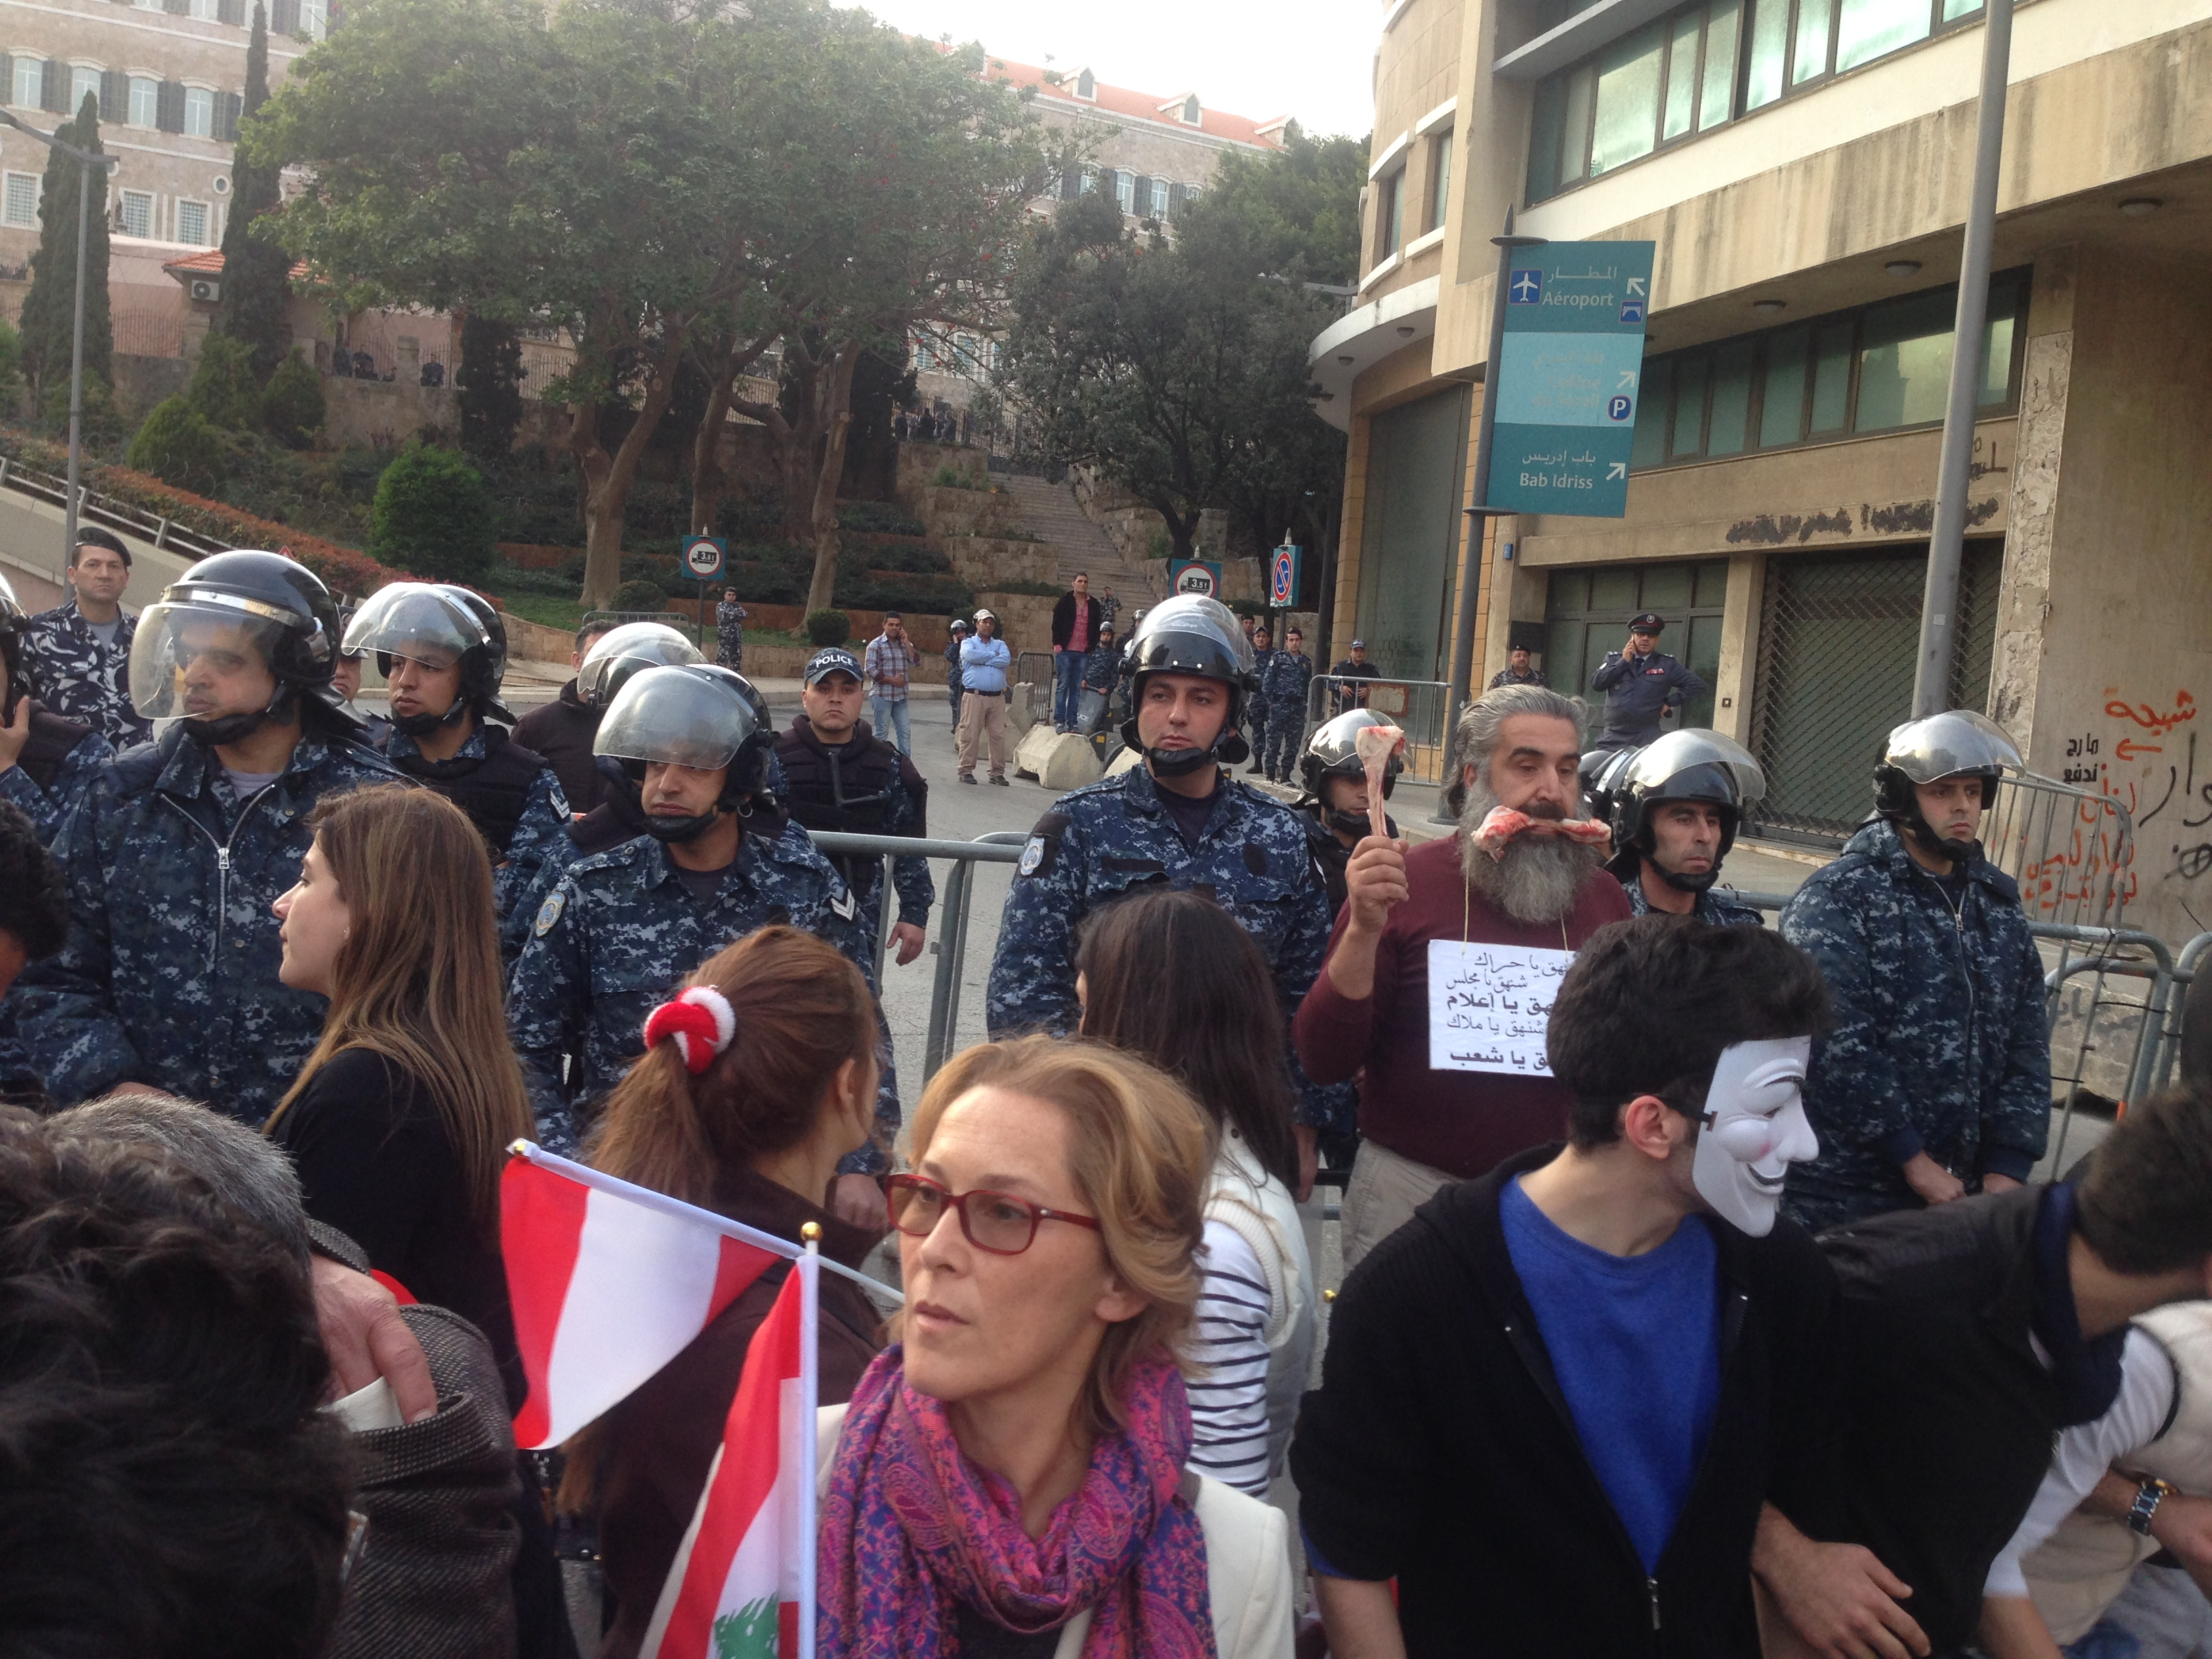 Demonstrators and police forces in Beirut streets in 2015